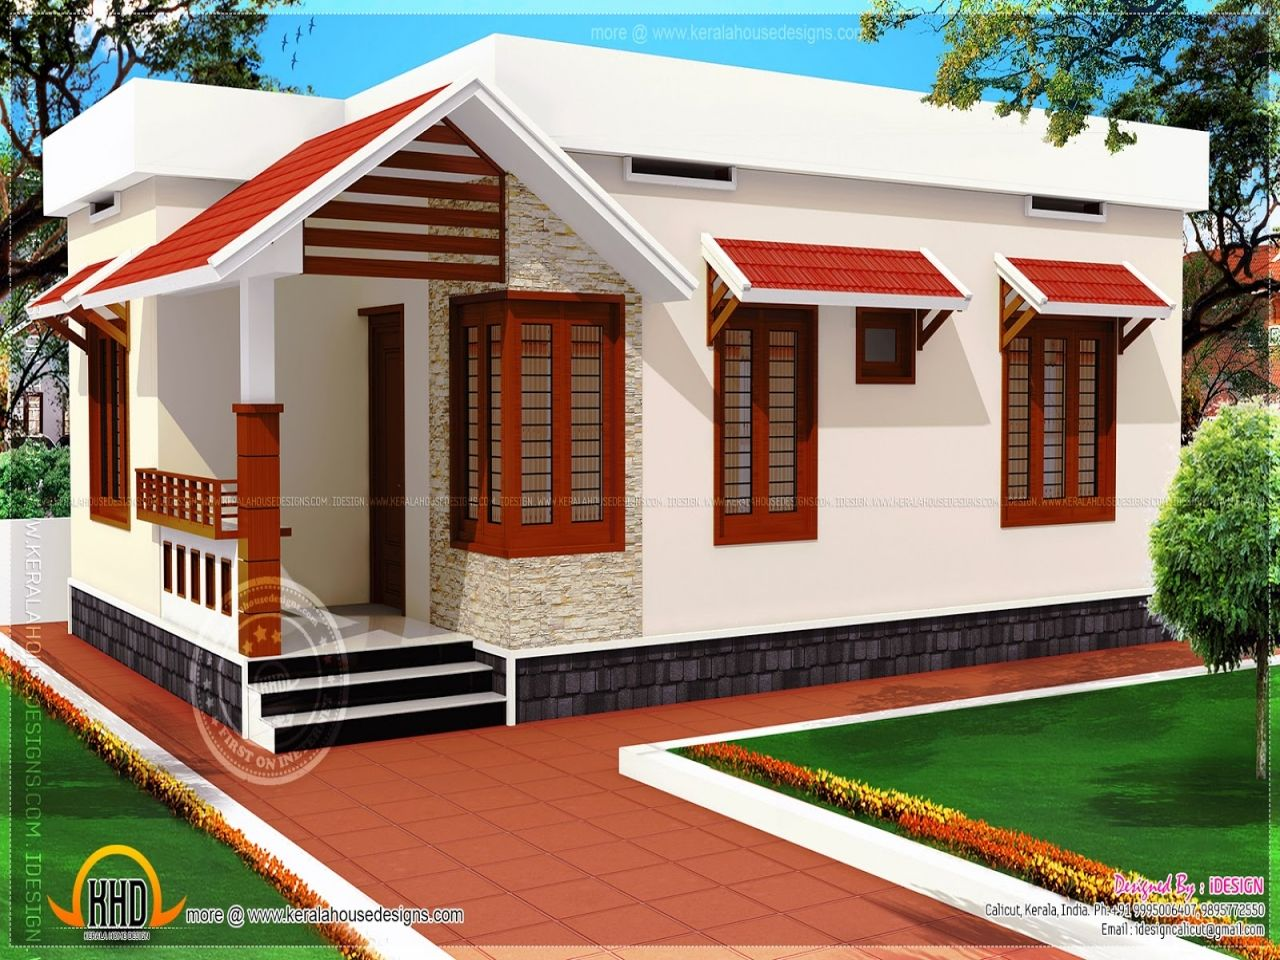 bungalow house plans with cost to build. low cost housing plans google search smart house best story dwg net cad  blocks and